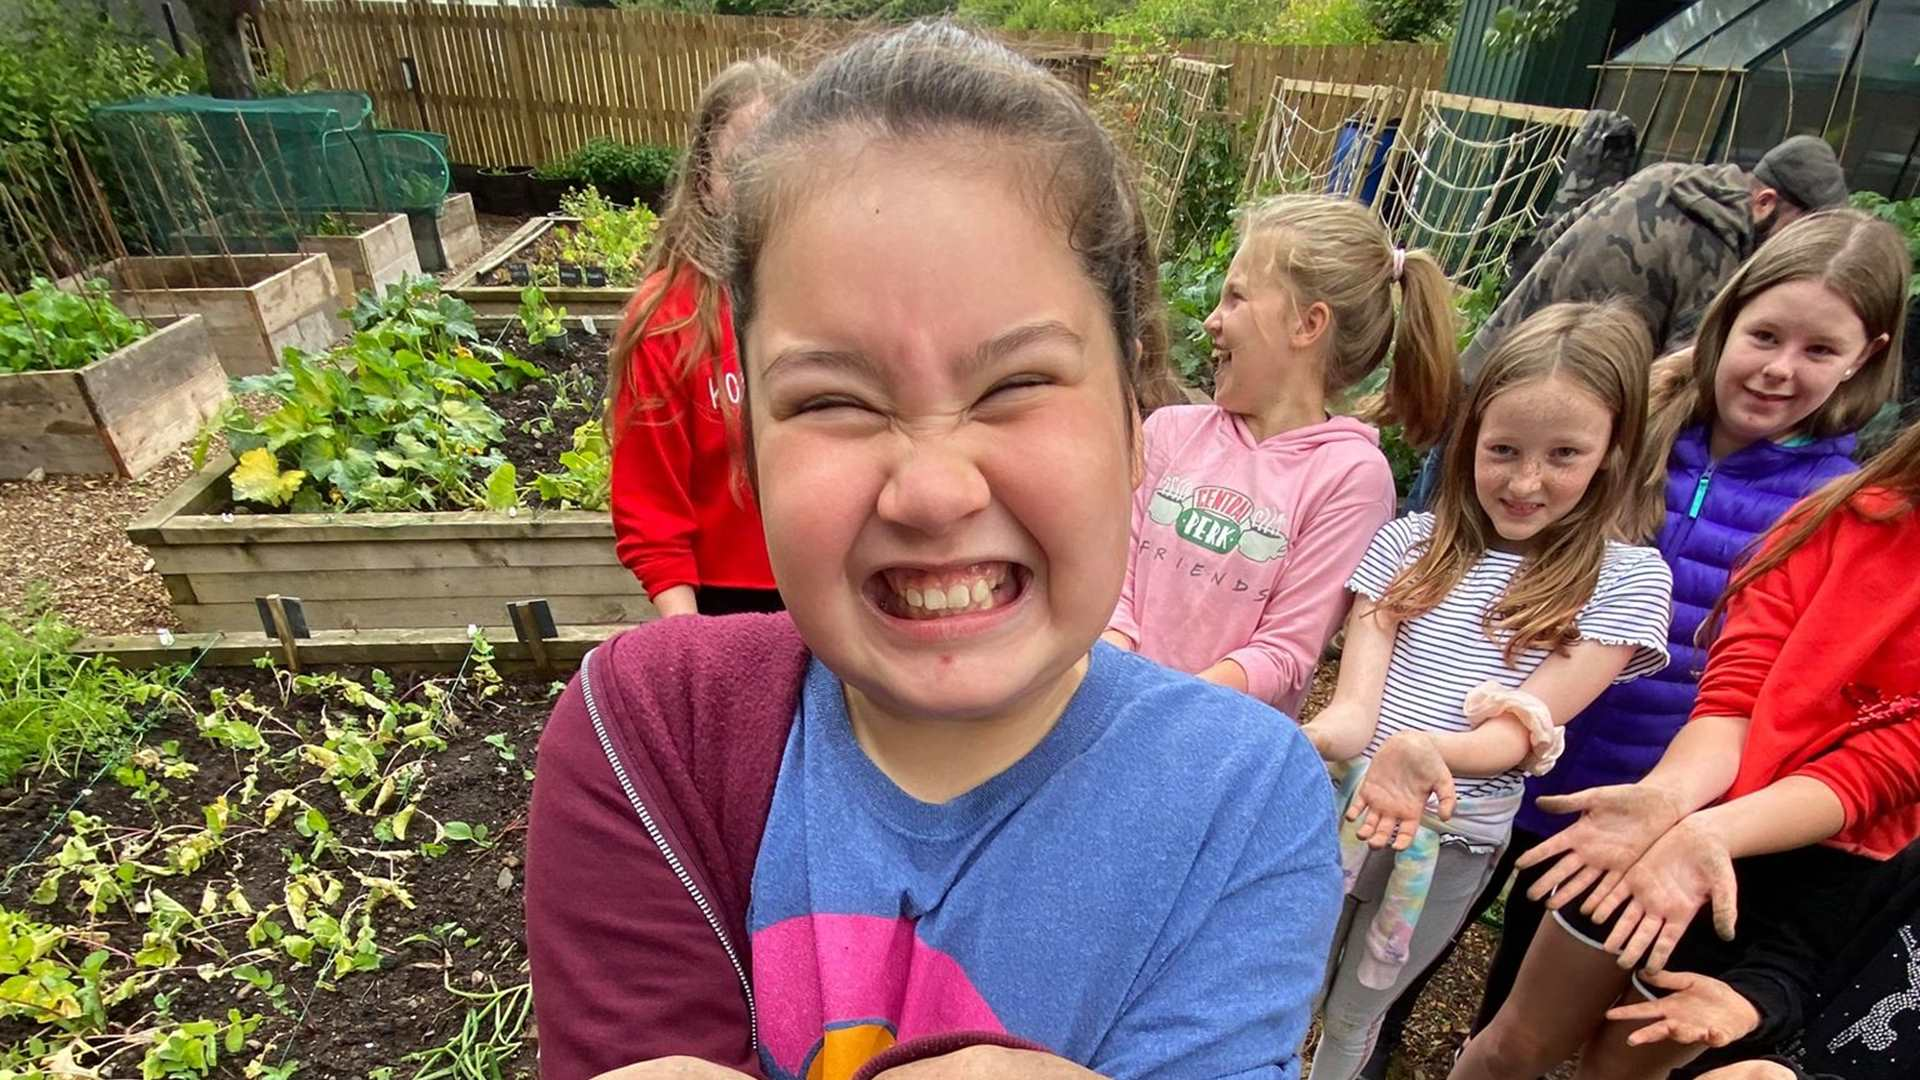 A child smiling and showing her muddy hands to the camera in a community garden